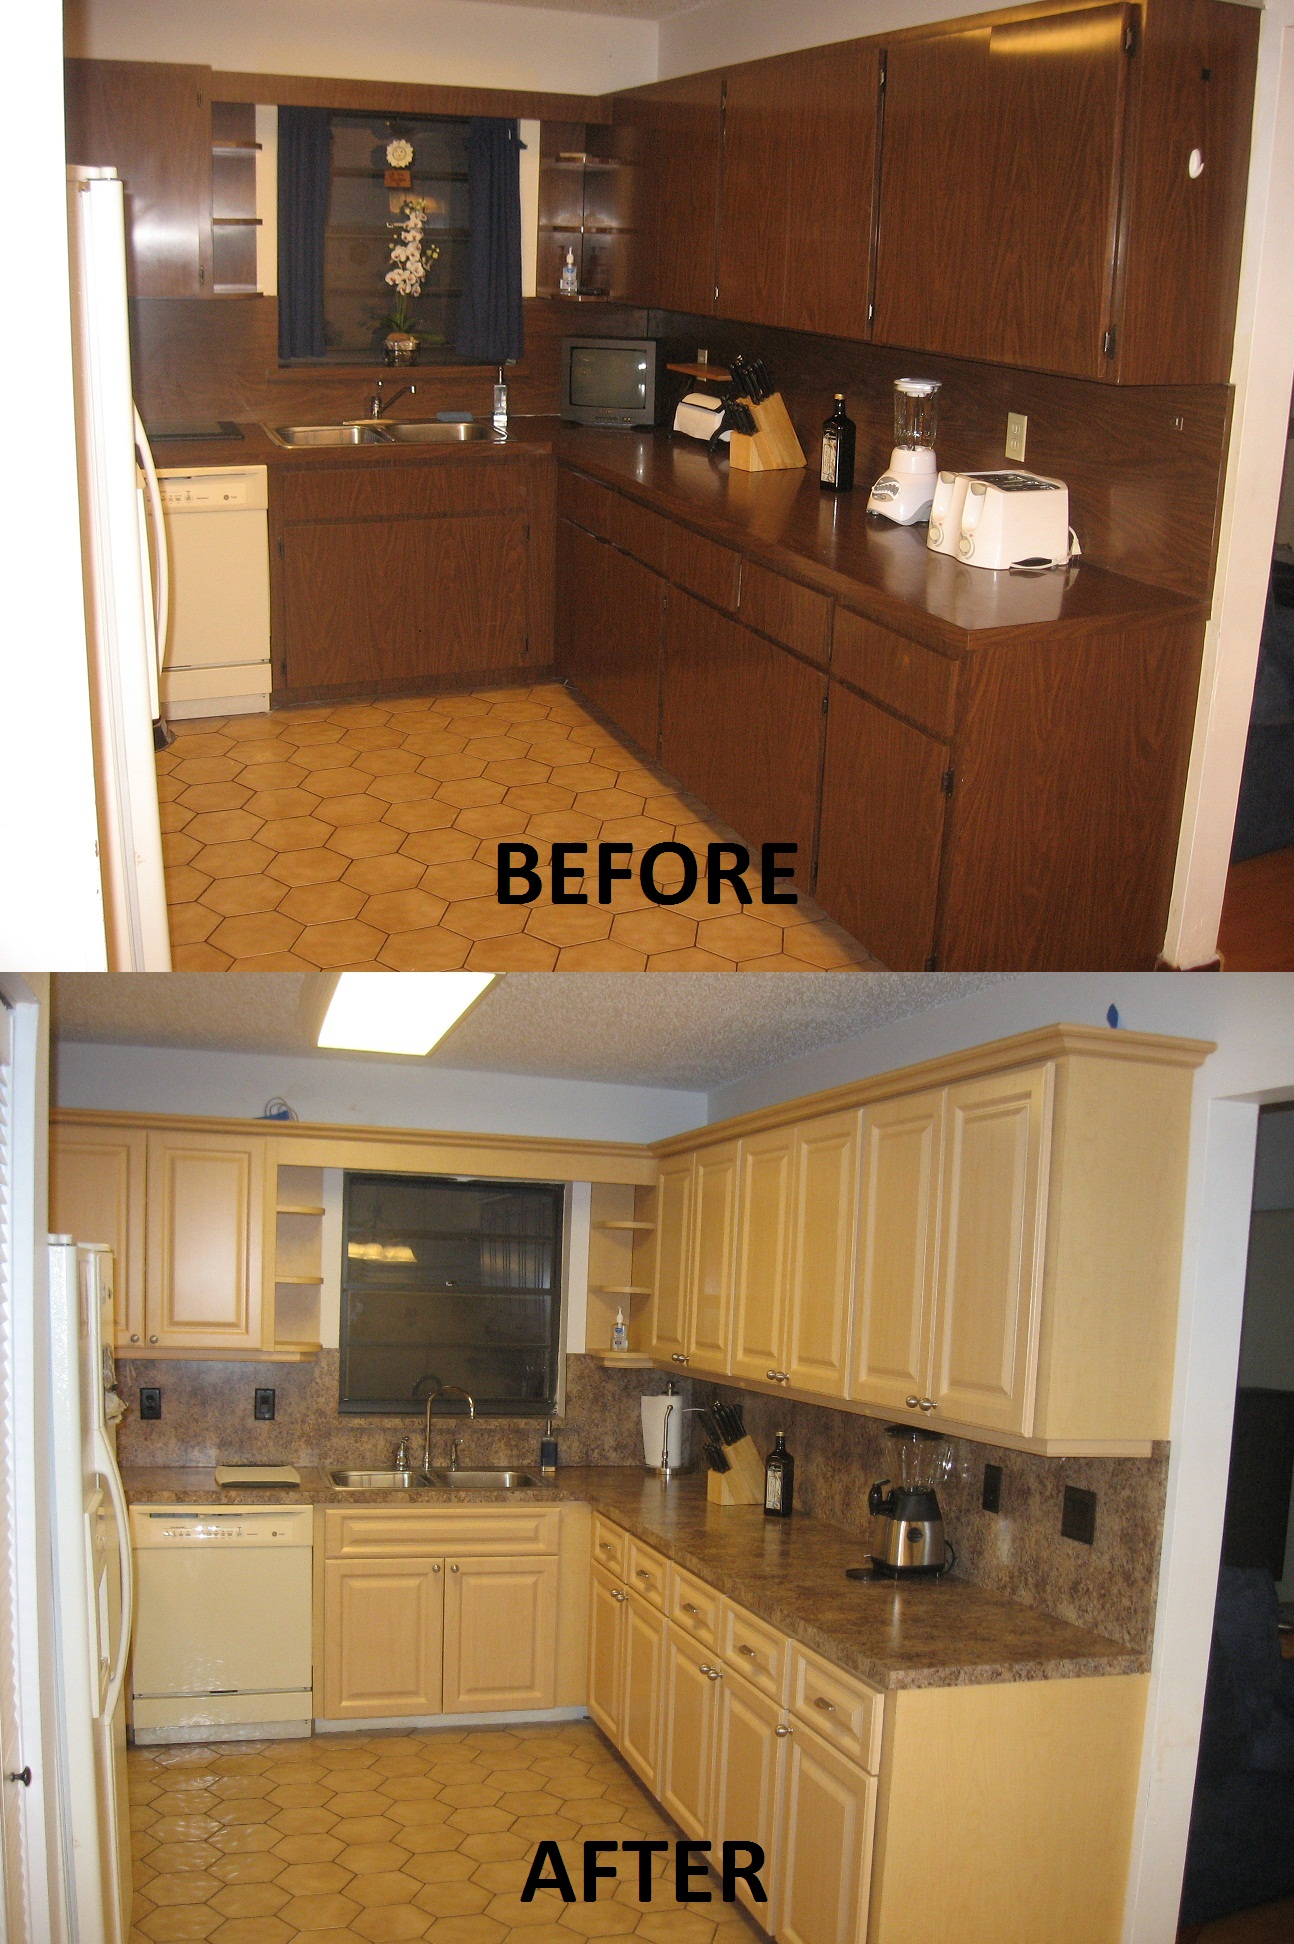 Before Amp After Pictures Kitchen Refacing Specialist Inc 954 494 1130kitchen Refacing